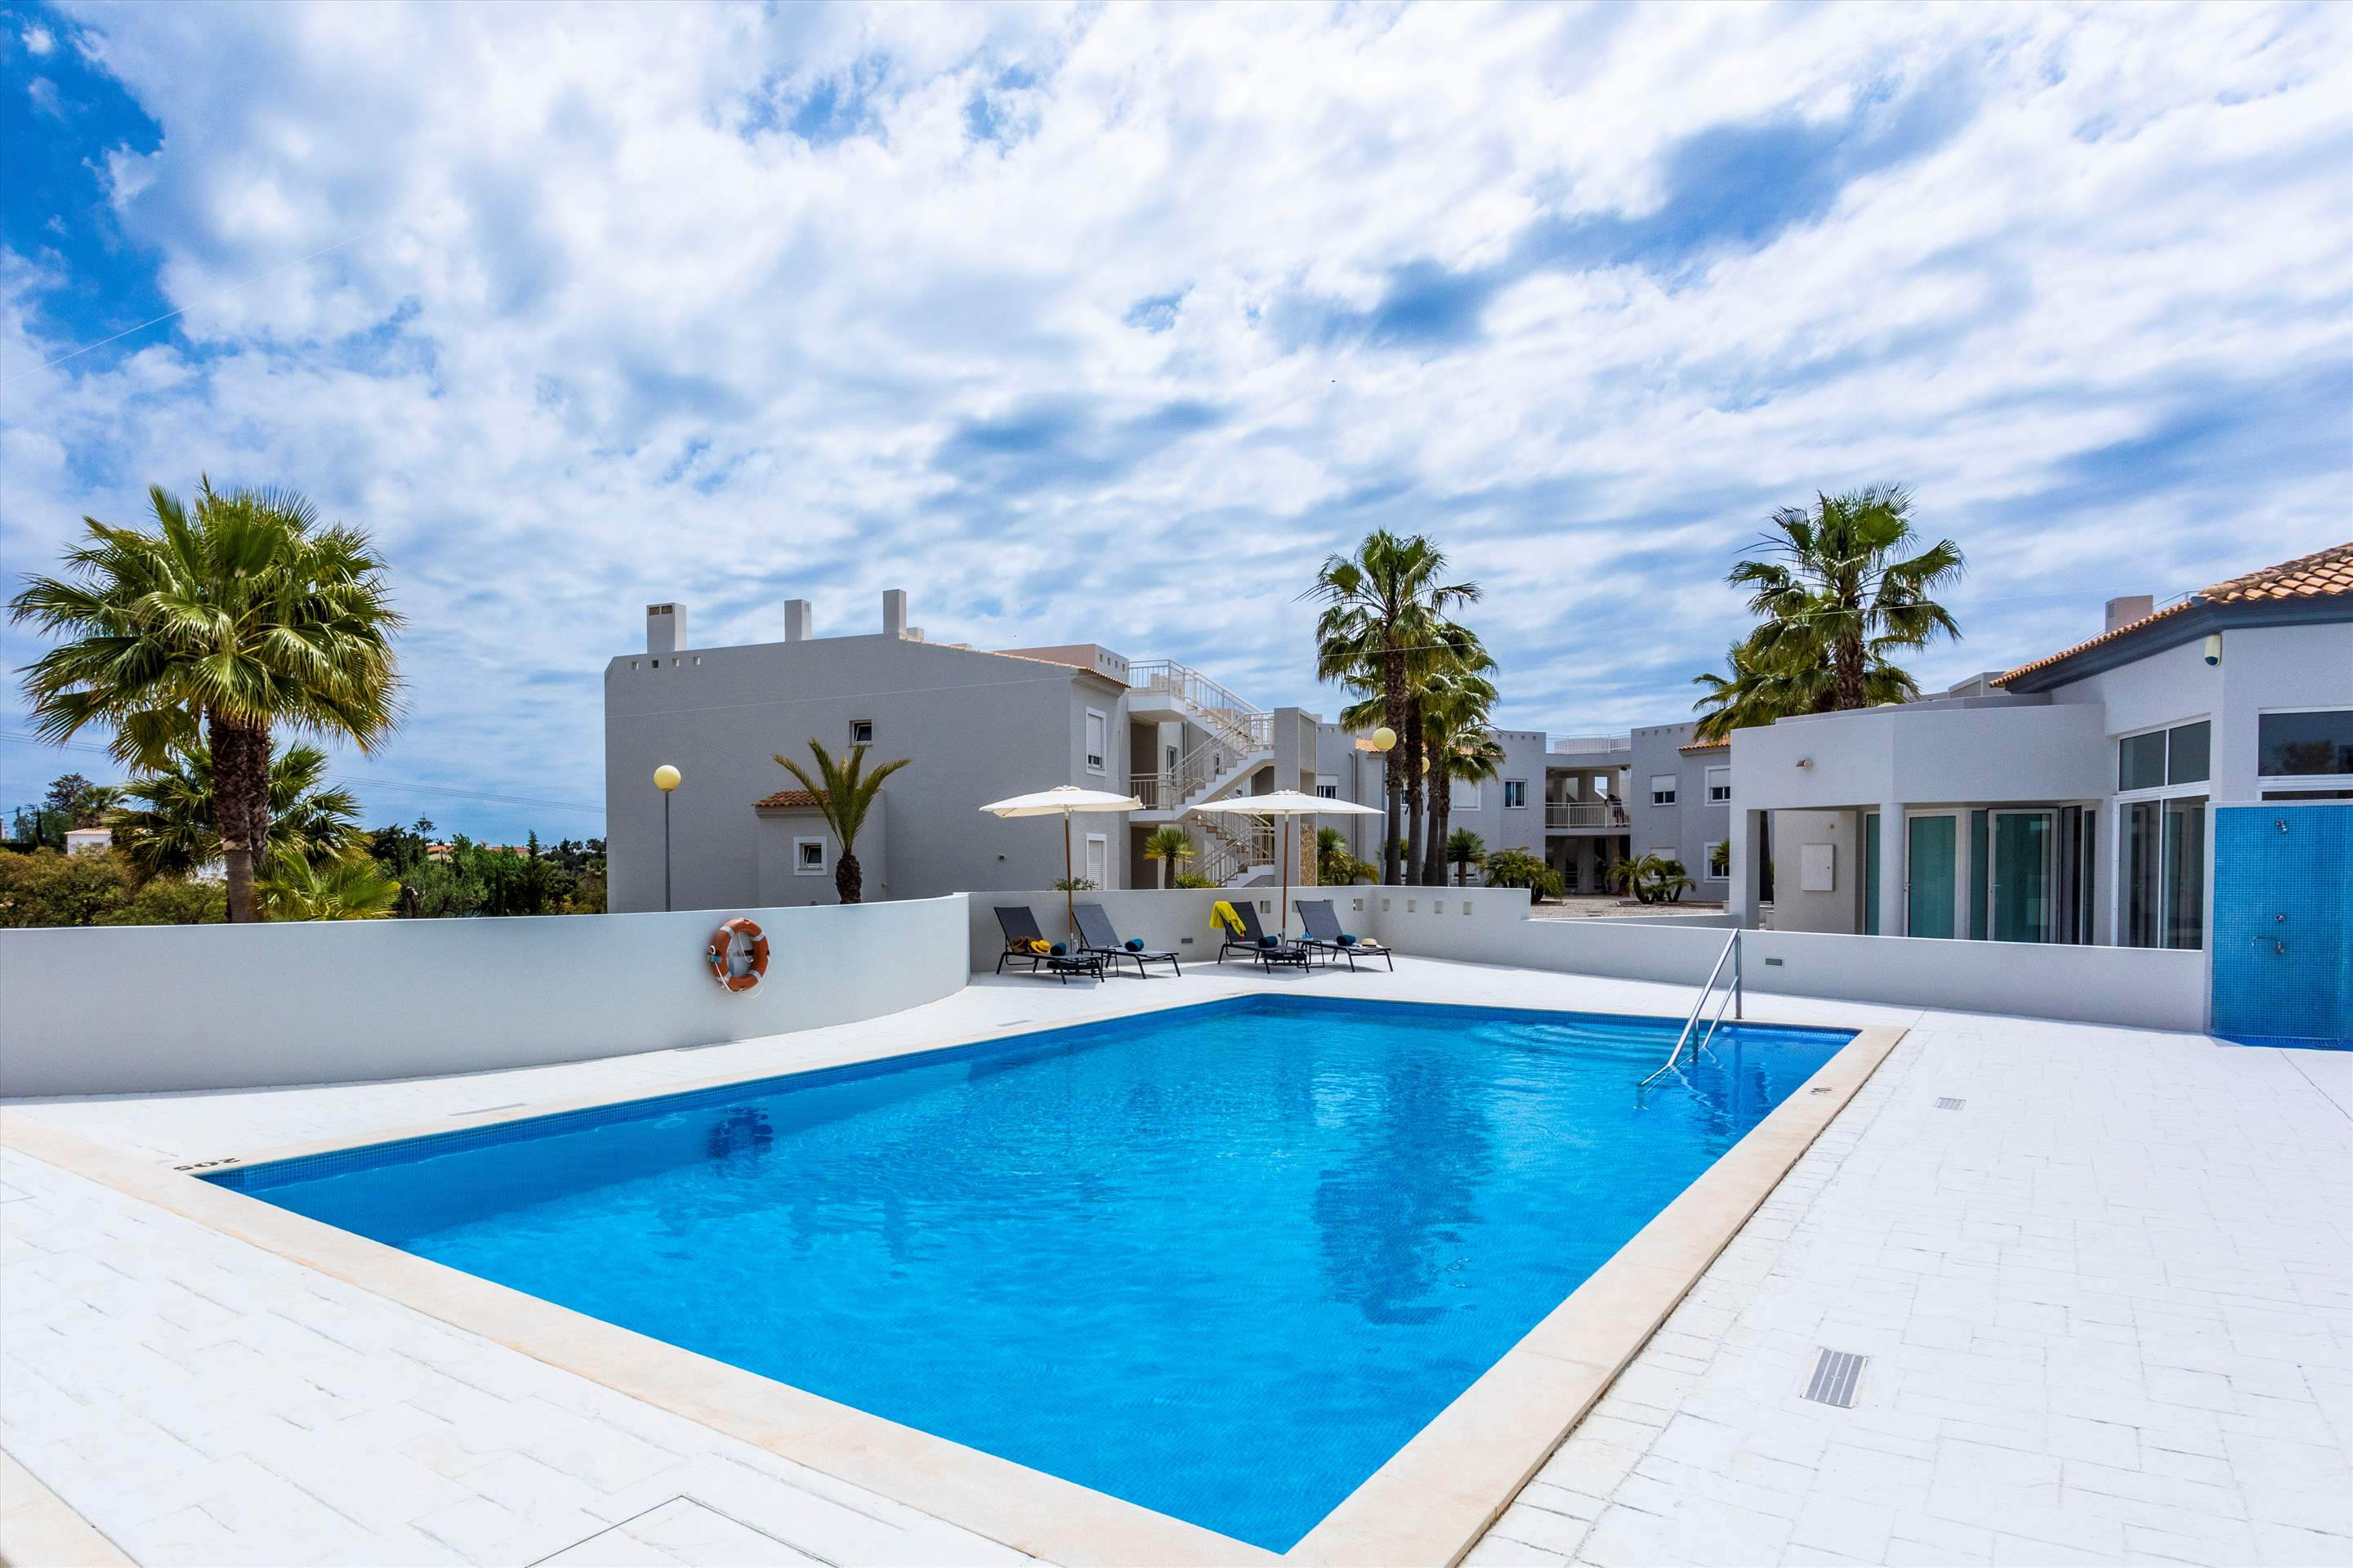 Placid Village, Two Bedroom Apartment , 2 bedroom apartment in Carvoeiro Area, Algarve Photo #1